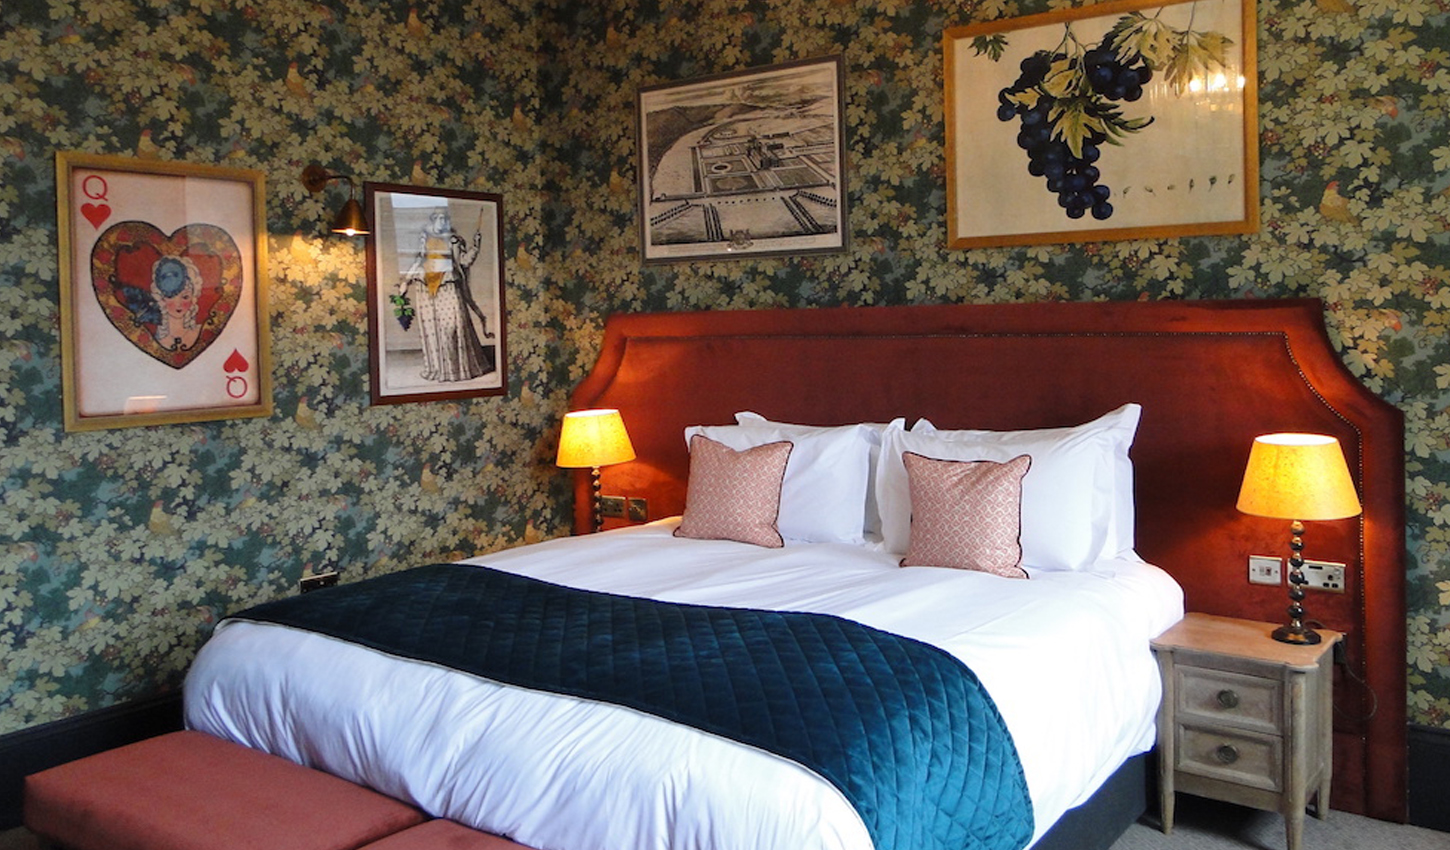 Classic Bedroom Escape The Park Hotel Accommodation In Teddington Best Rate Guaranteed